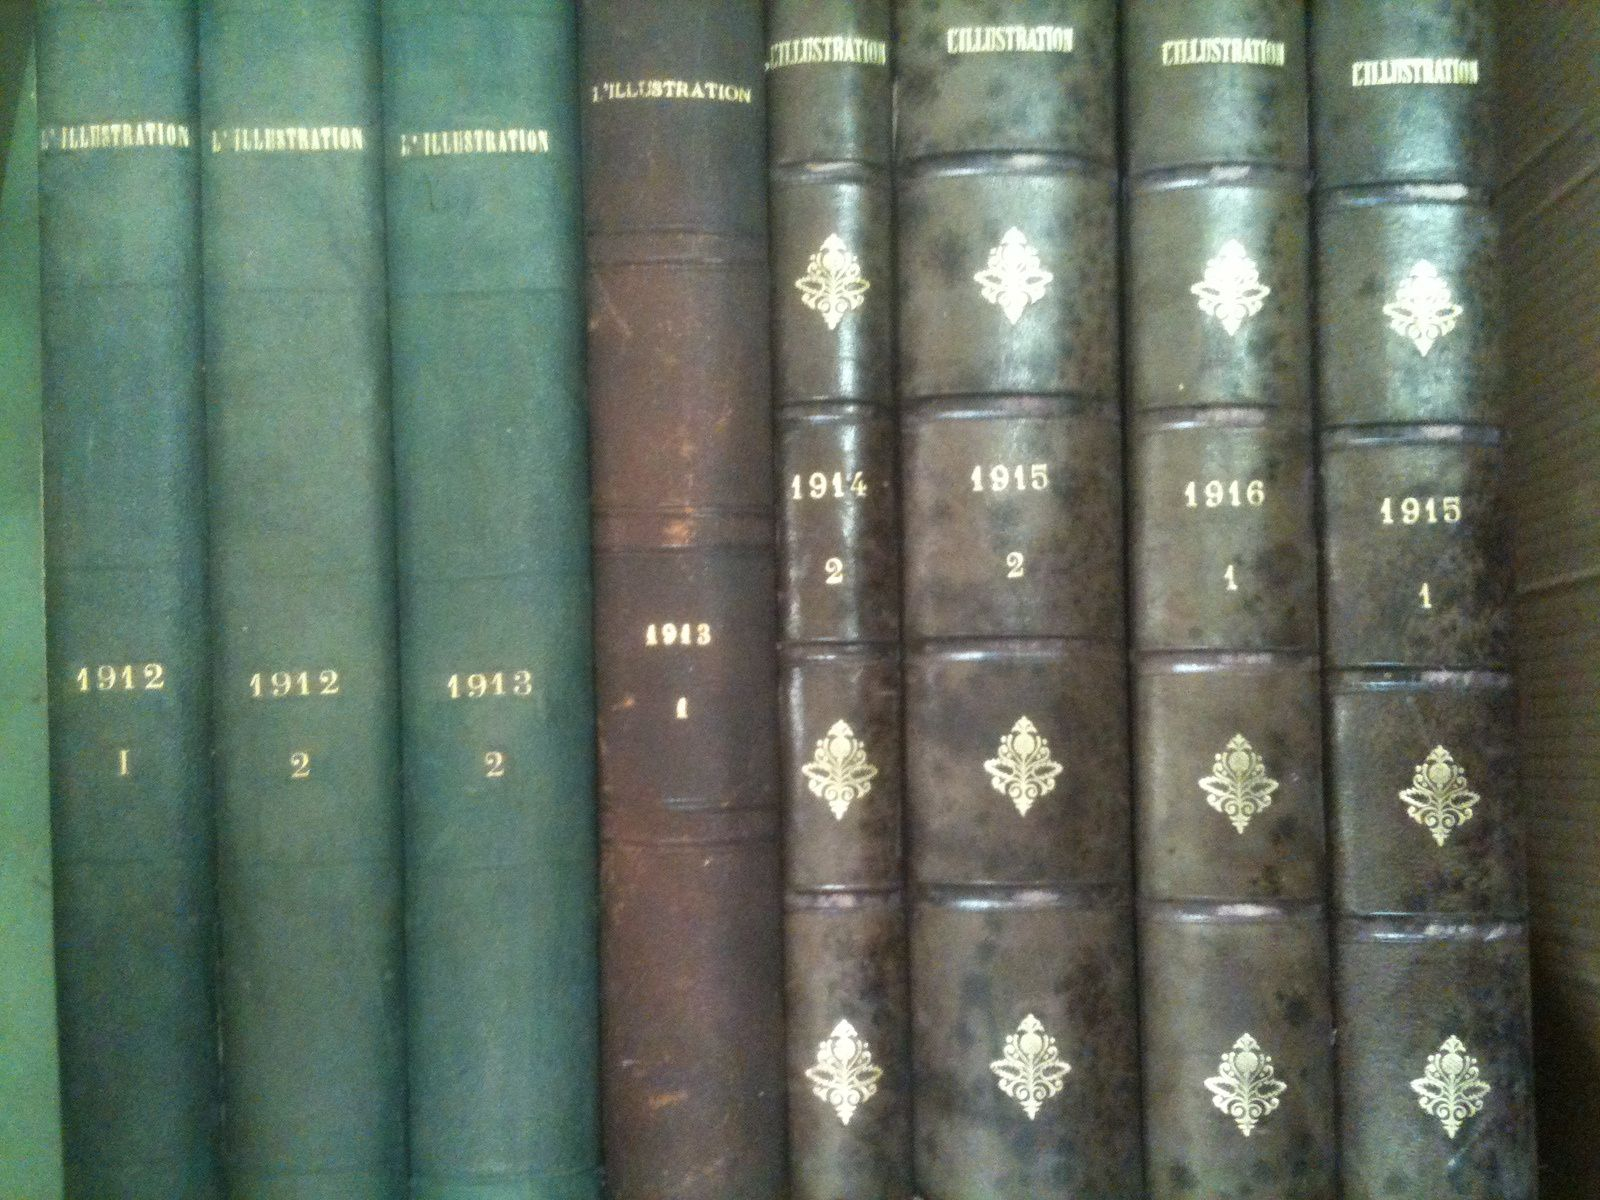 albums de l illustration des annees 1881 a 1922  tres belle reluire bon etat  prix 18€ piece  port possible